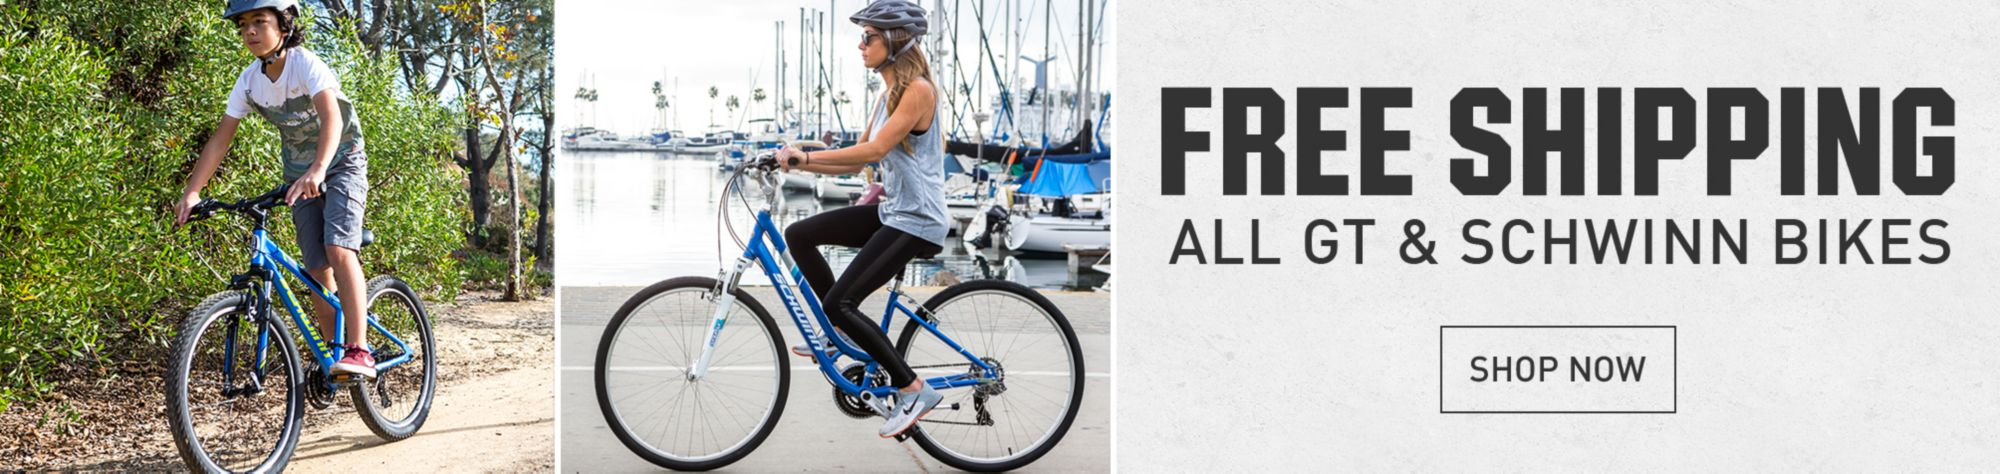 Free Shipping on Bikes from GT, Schwinn & More Brands